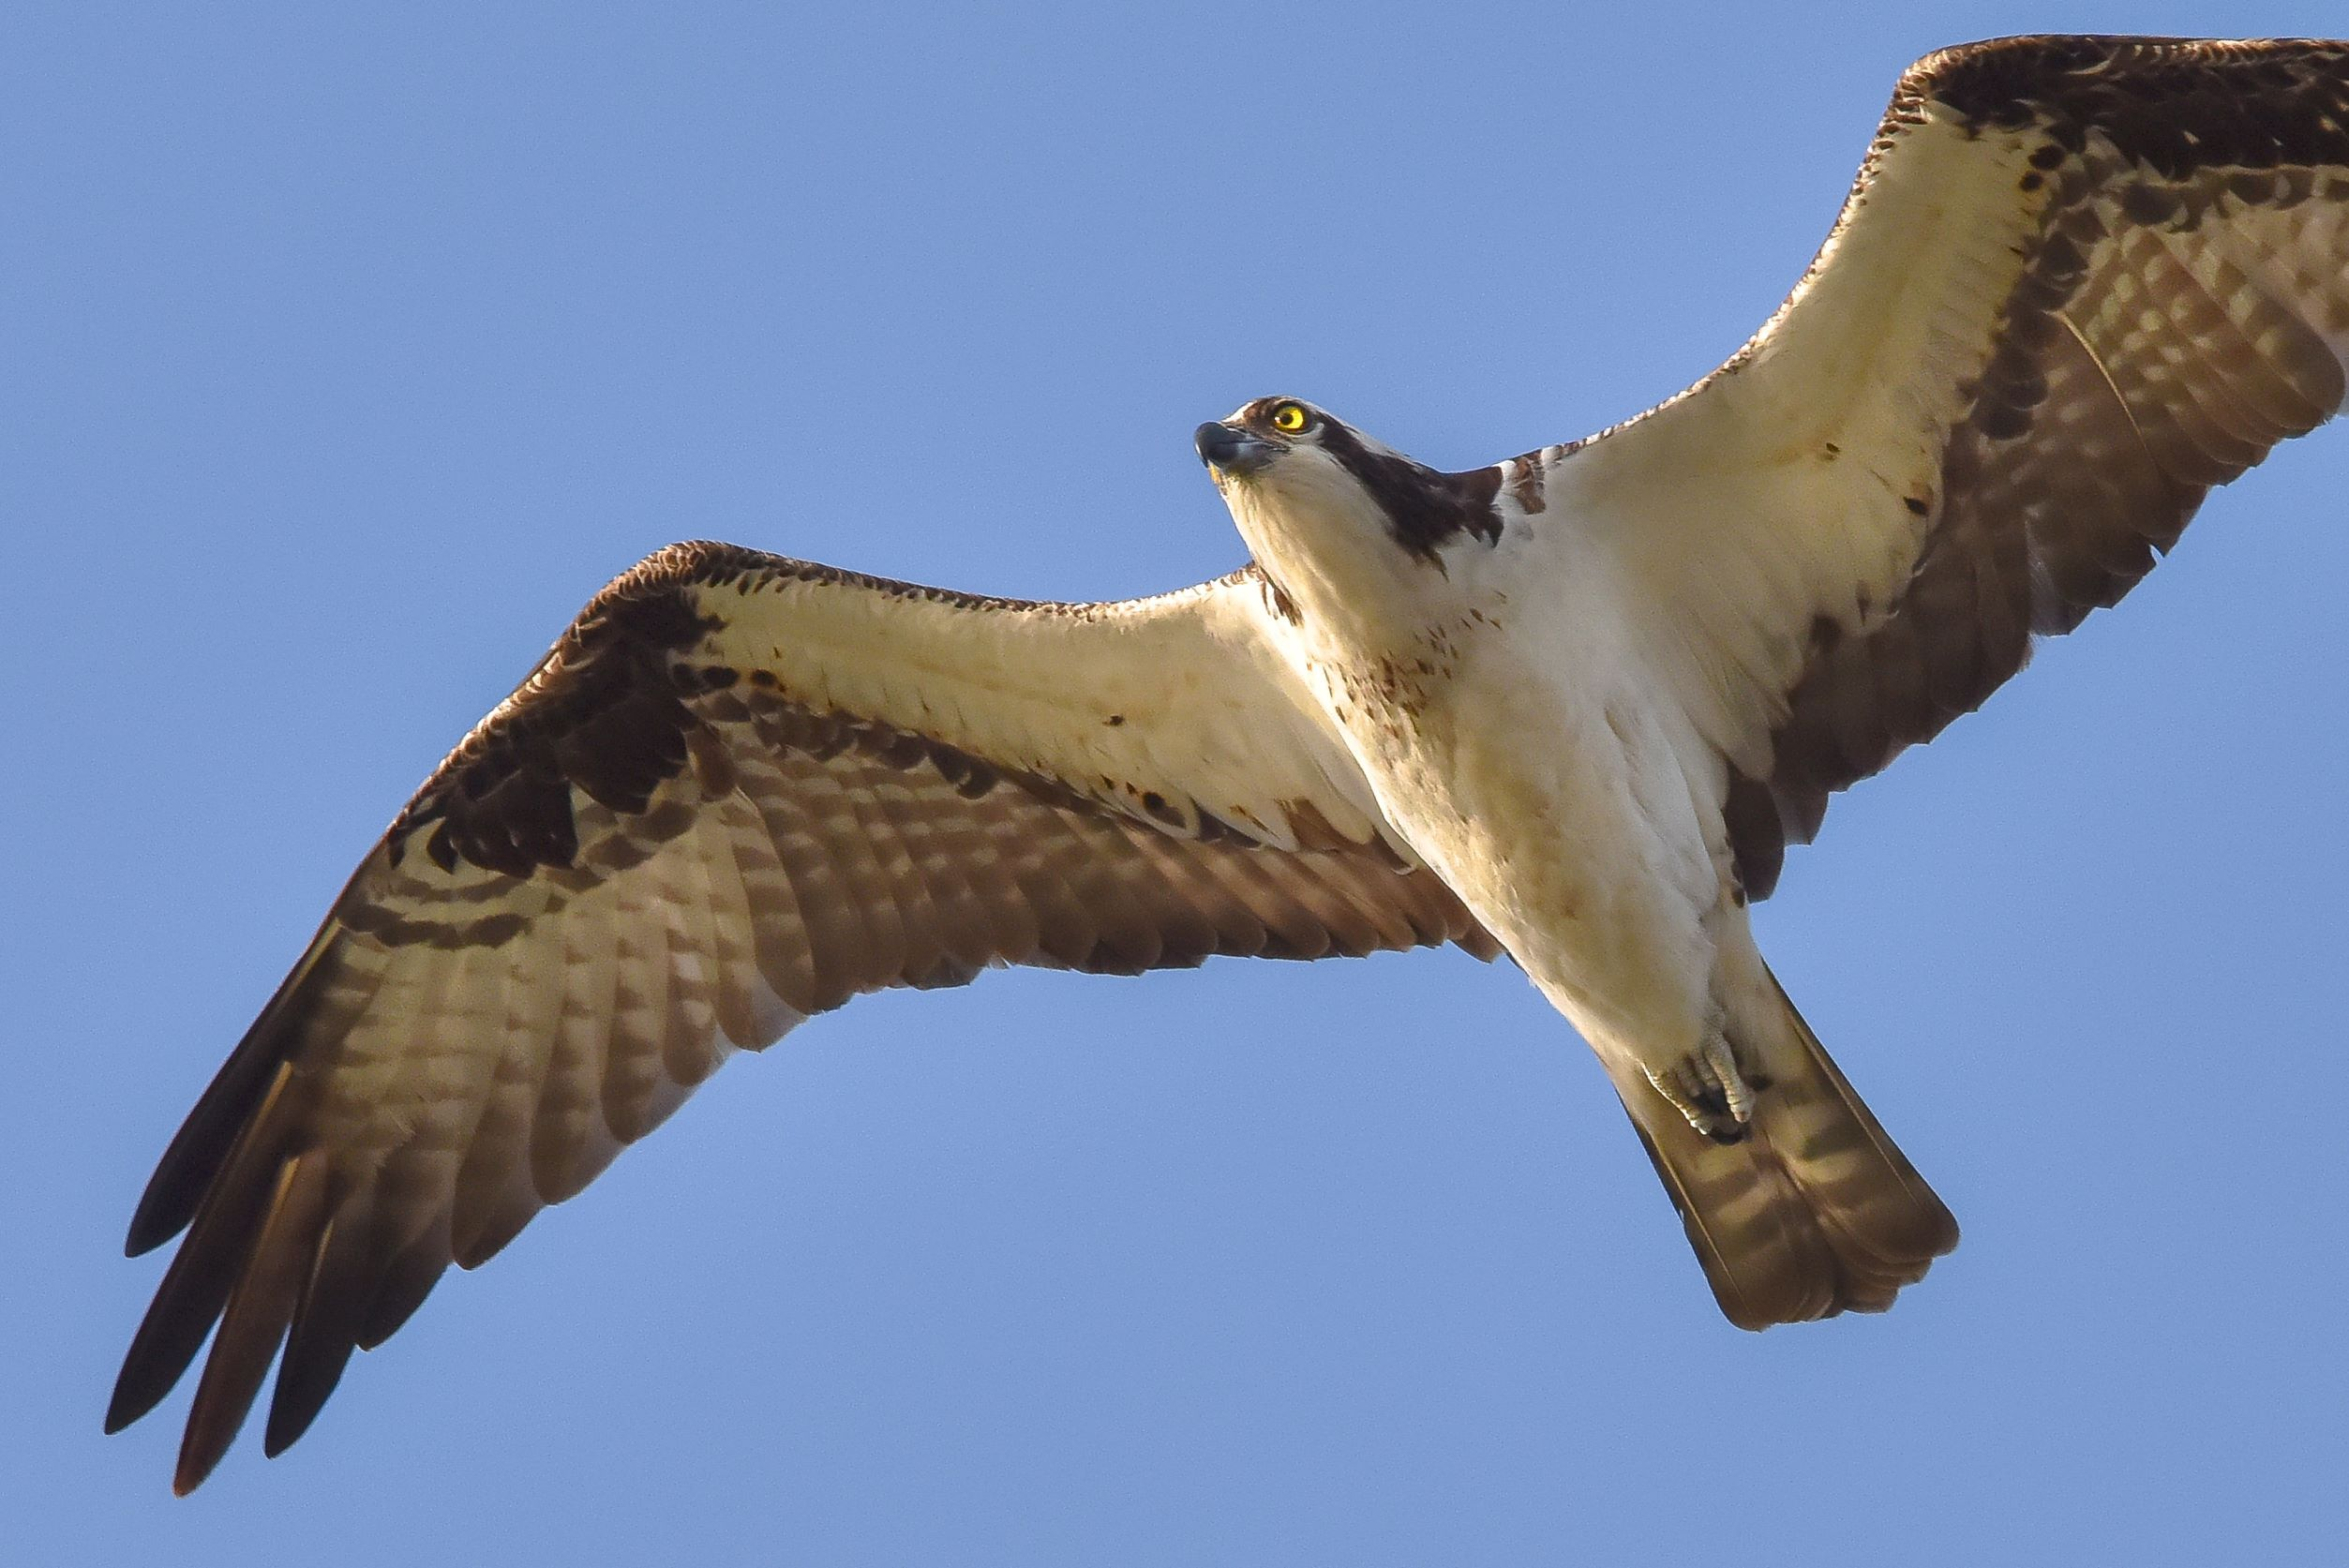 Looking up at a large white and brown raptor soaring overhead, with outstretched wings and a yellow eye.